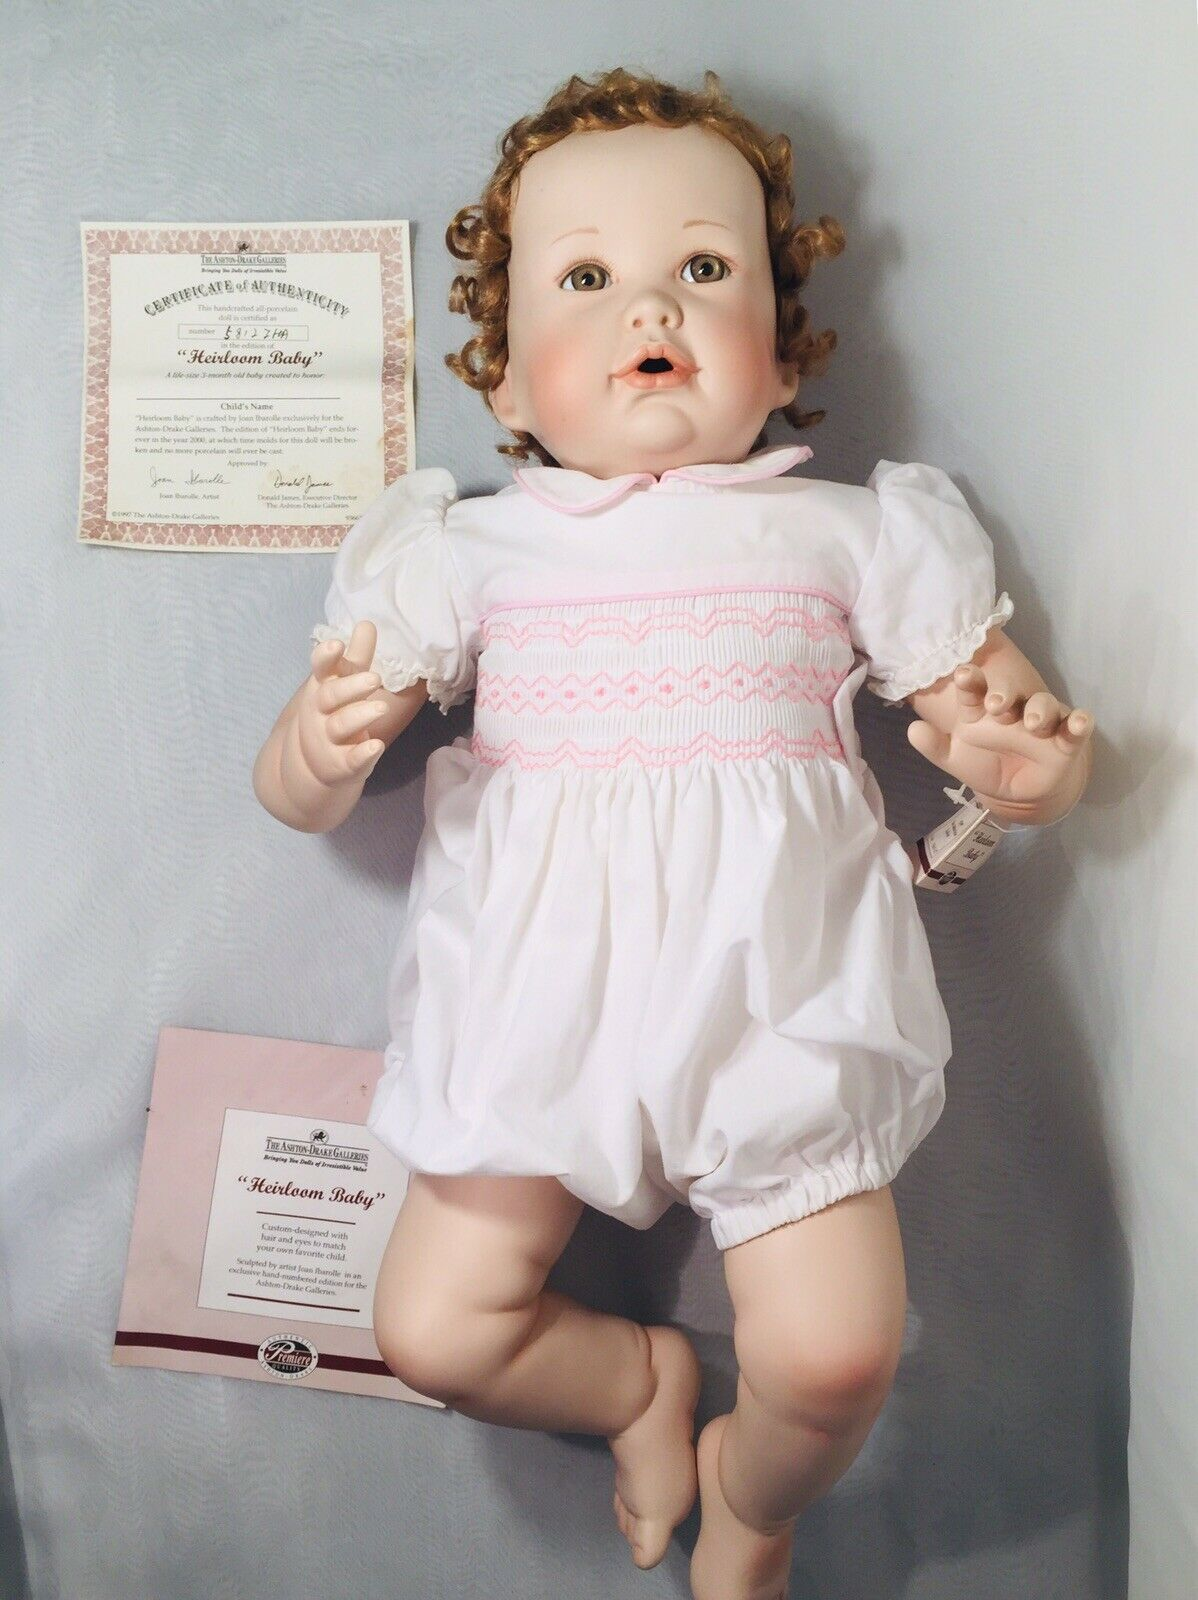 ASHTON DRAKE GALLERIES HEIRLOOM BABY JOAN IBAROLLE. Porcelain Doll